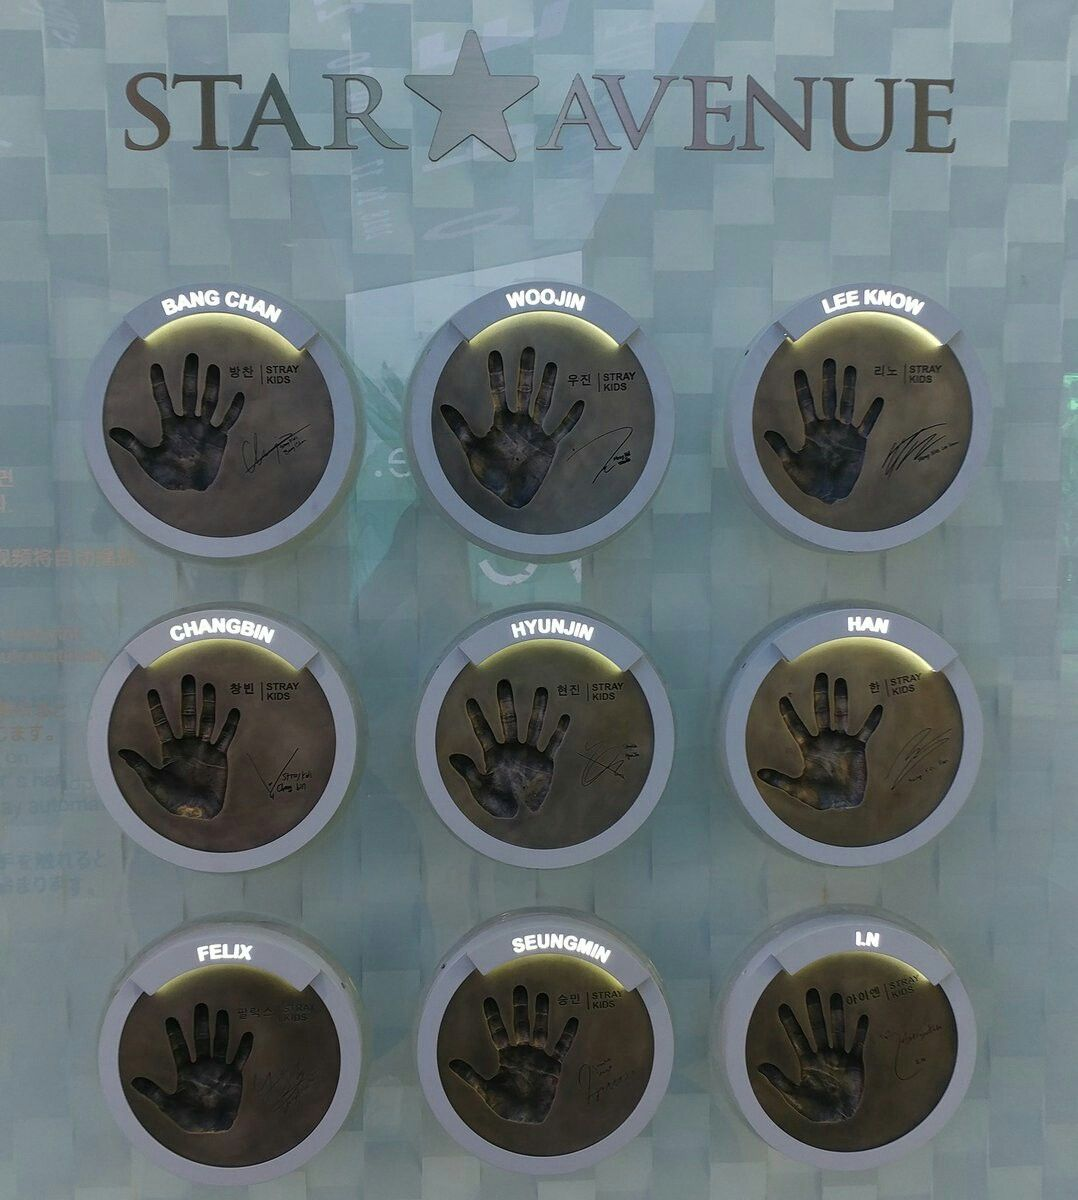 Stray Kids Hand Prints At Star Avenue At Myeongdong Lotte Department Store Felix Stray Kids Stray Avenue Of Stars